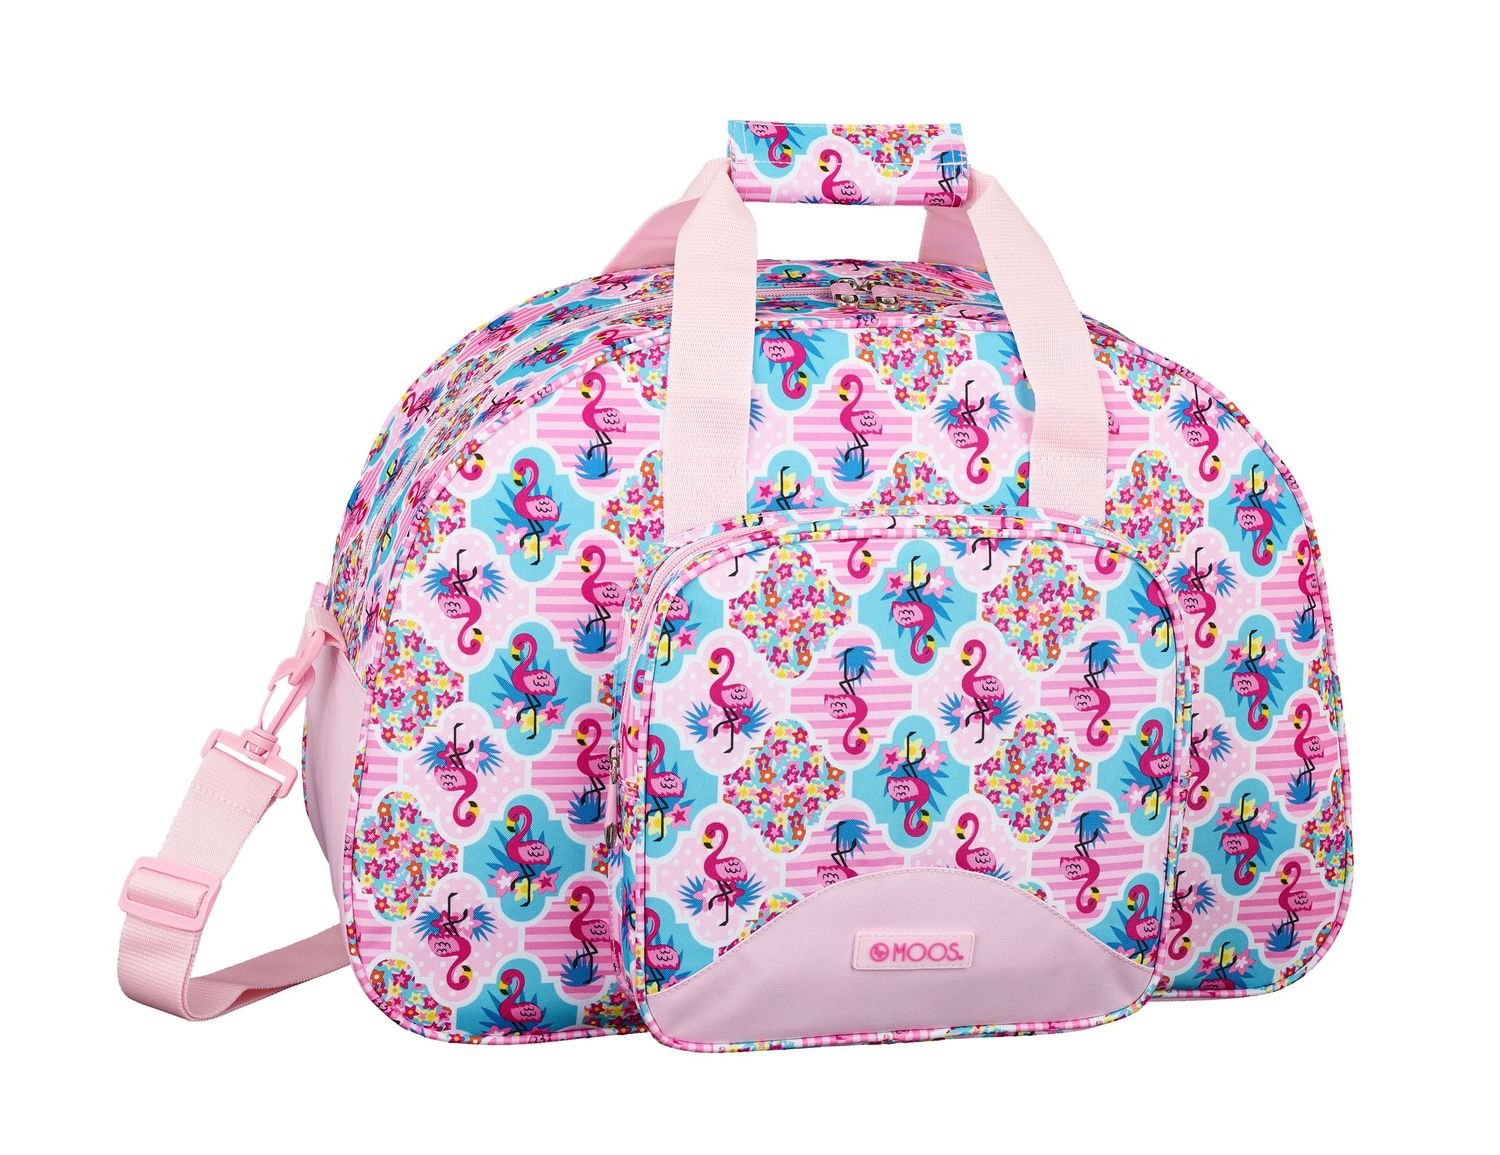 Travel Sports Bag 48 cm MOOS Flamingo Pink – image 1